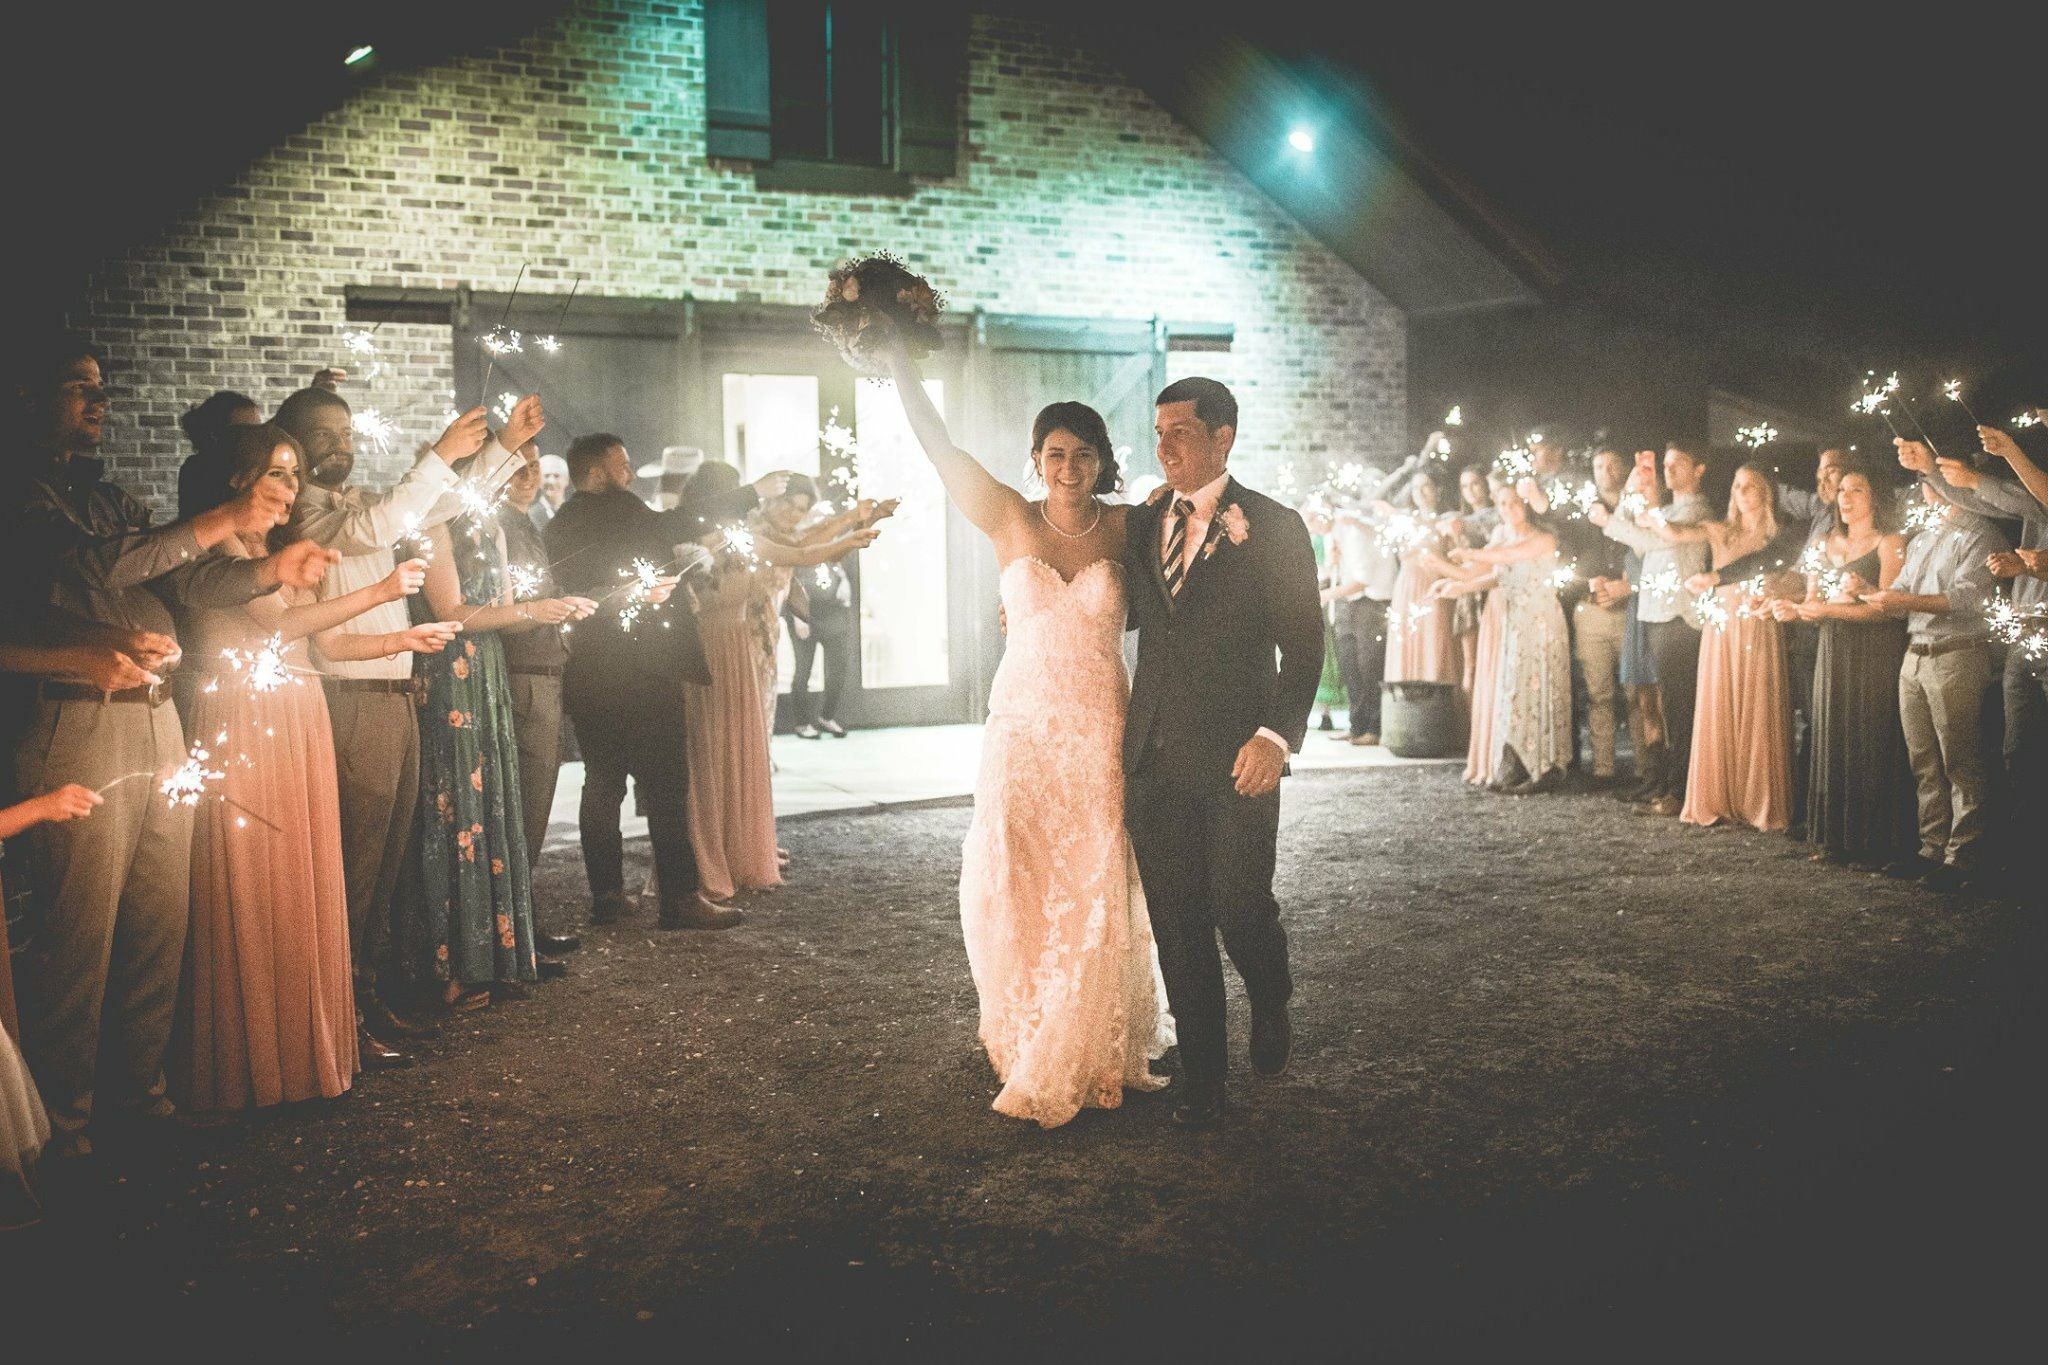 Sparkler Farewell At The Carriage House Conroe Houston Weddings Planned And Coordinated By Invent Affordable Wedding Planner Houston Wedding Wedding Planning